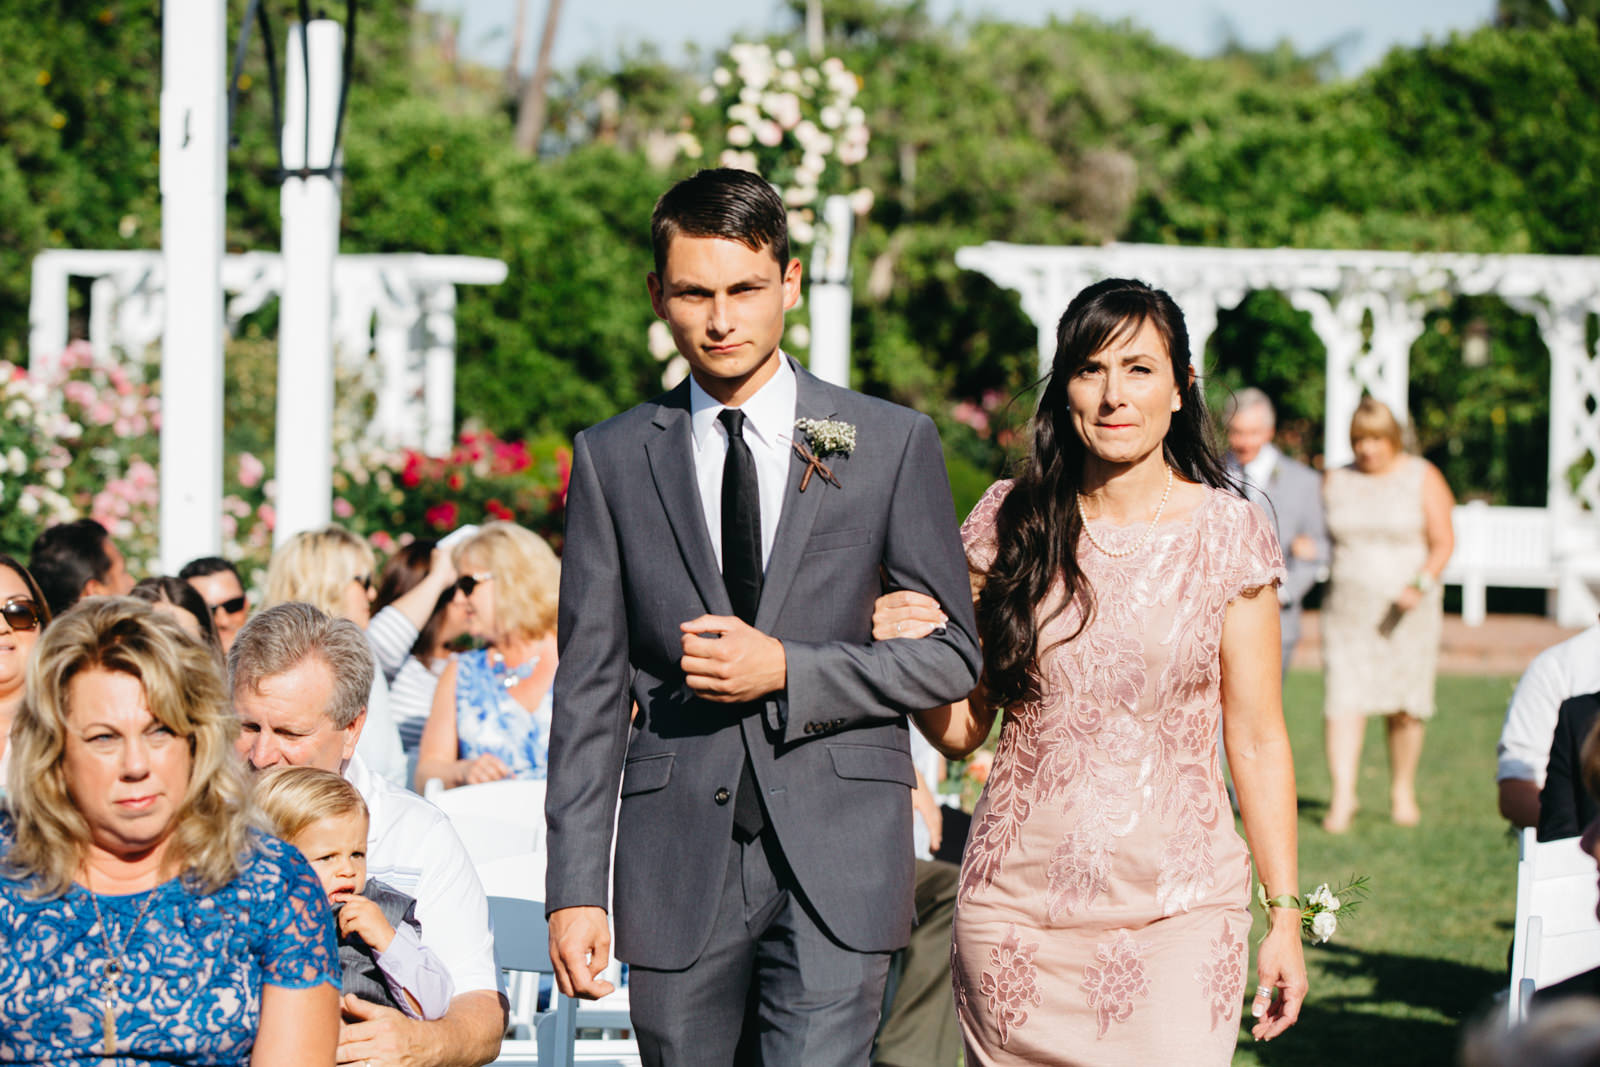 LA Los Angeles Arboretum Garden Wedding 14